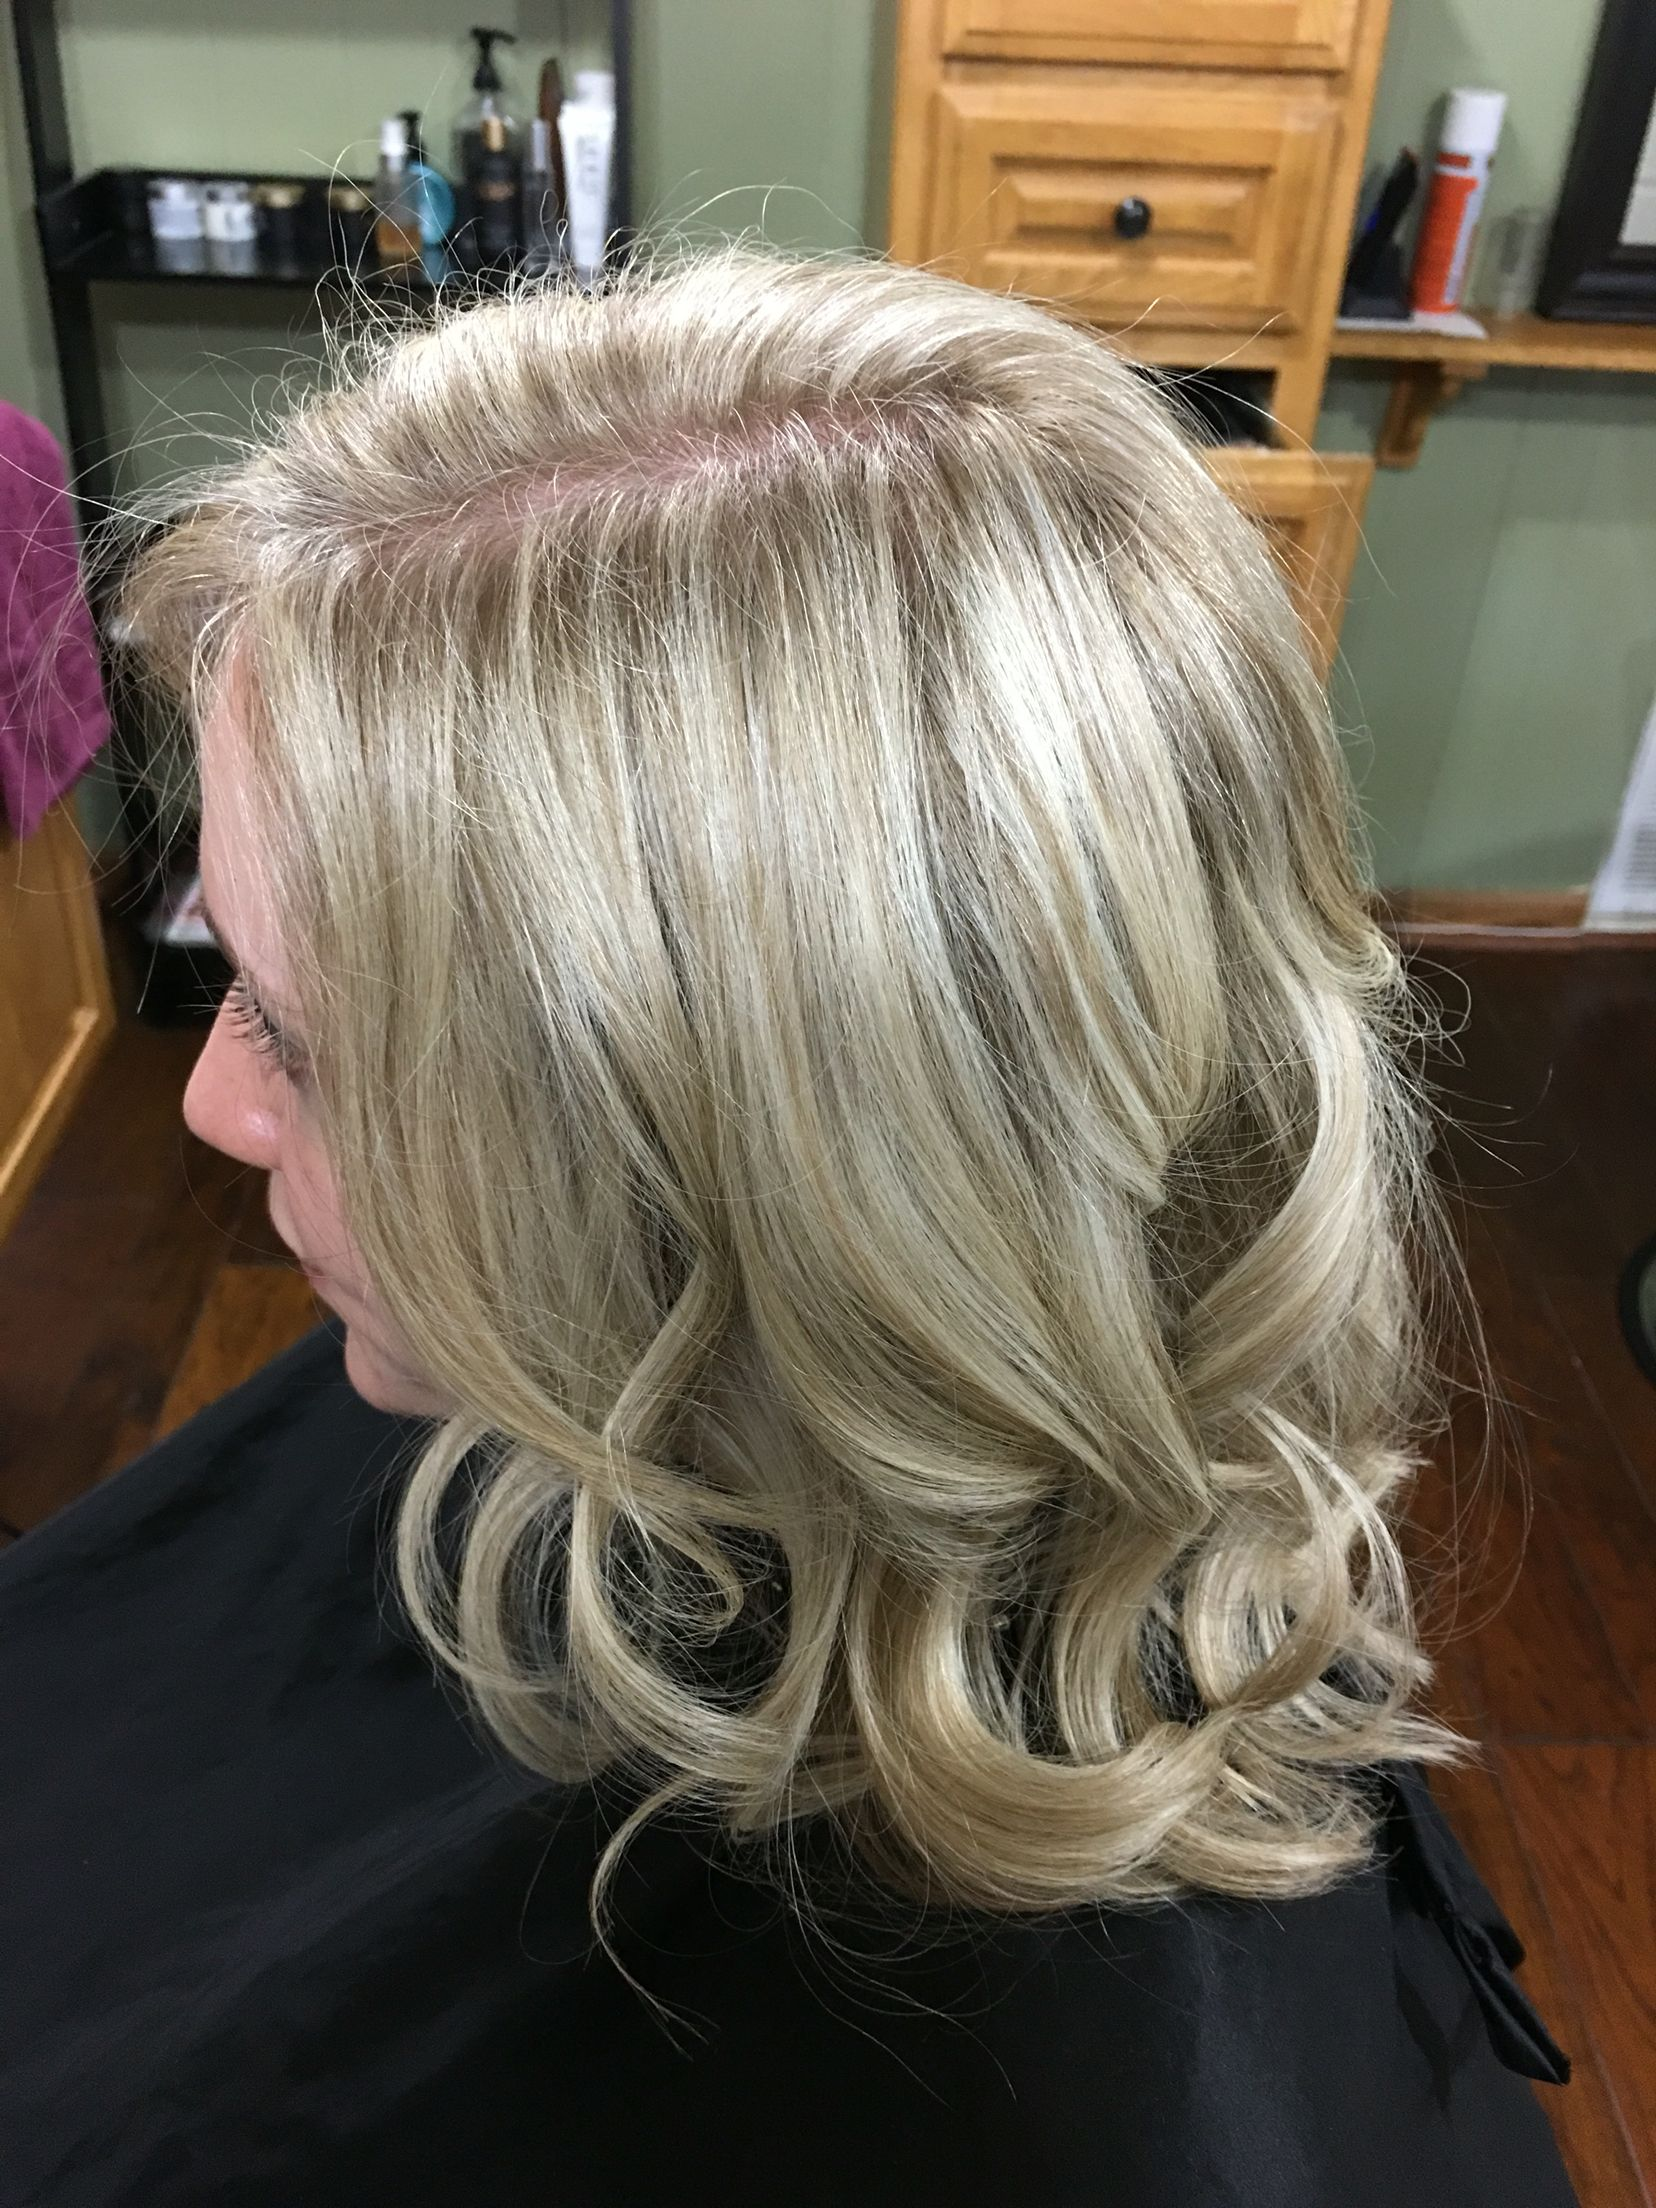 Icy Blonde Highlights w Beige Lowlight Updo Hairstyle